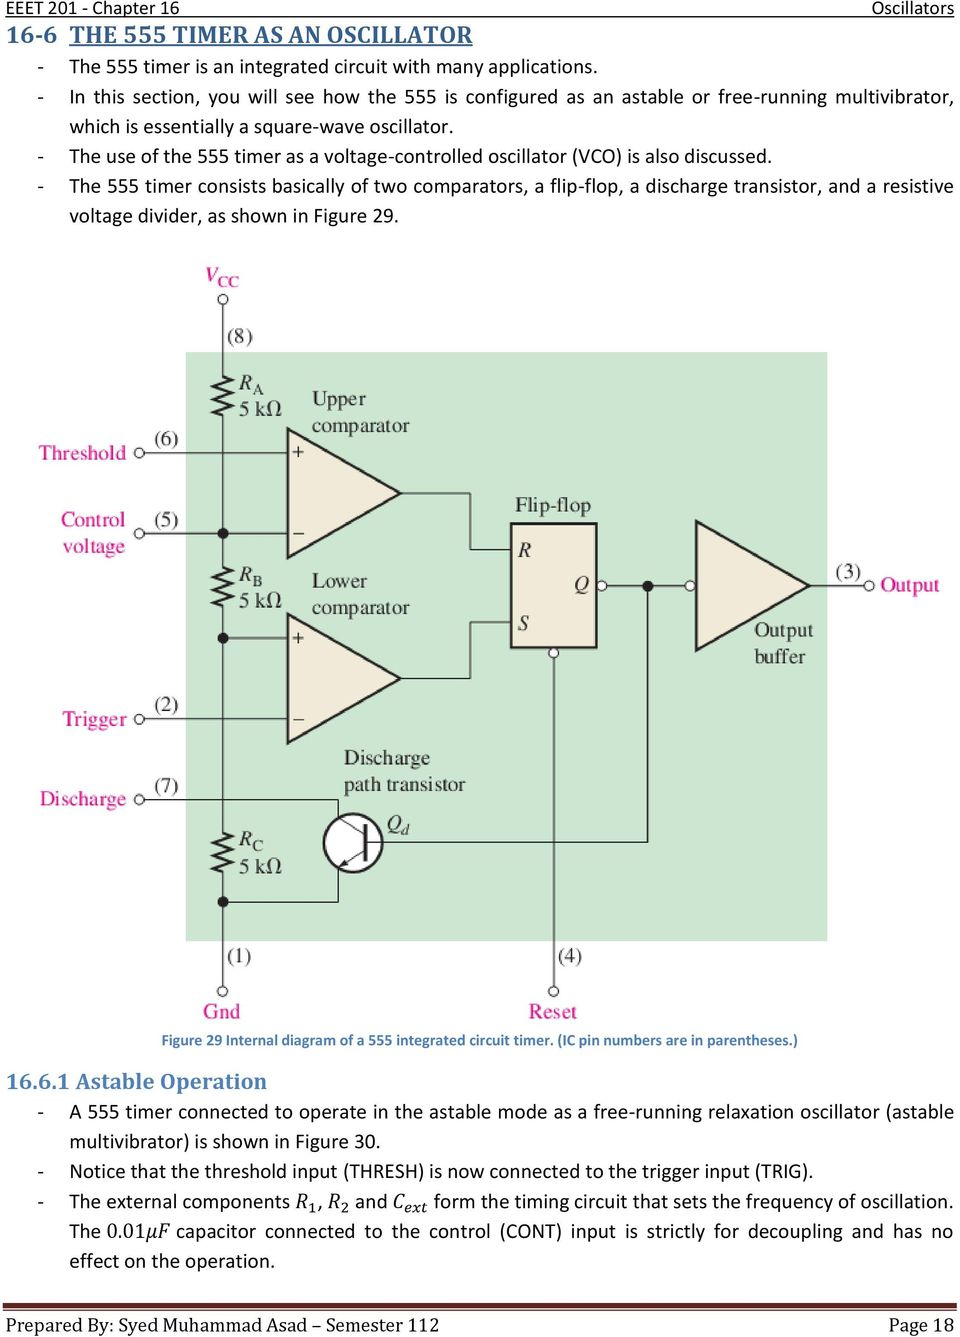 Chapter 16 Oscillators Pdf Wide Range 555 Vco Circuit Schematic The Use Of Timer As A Voltage Controlled Oscillator